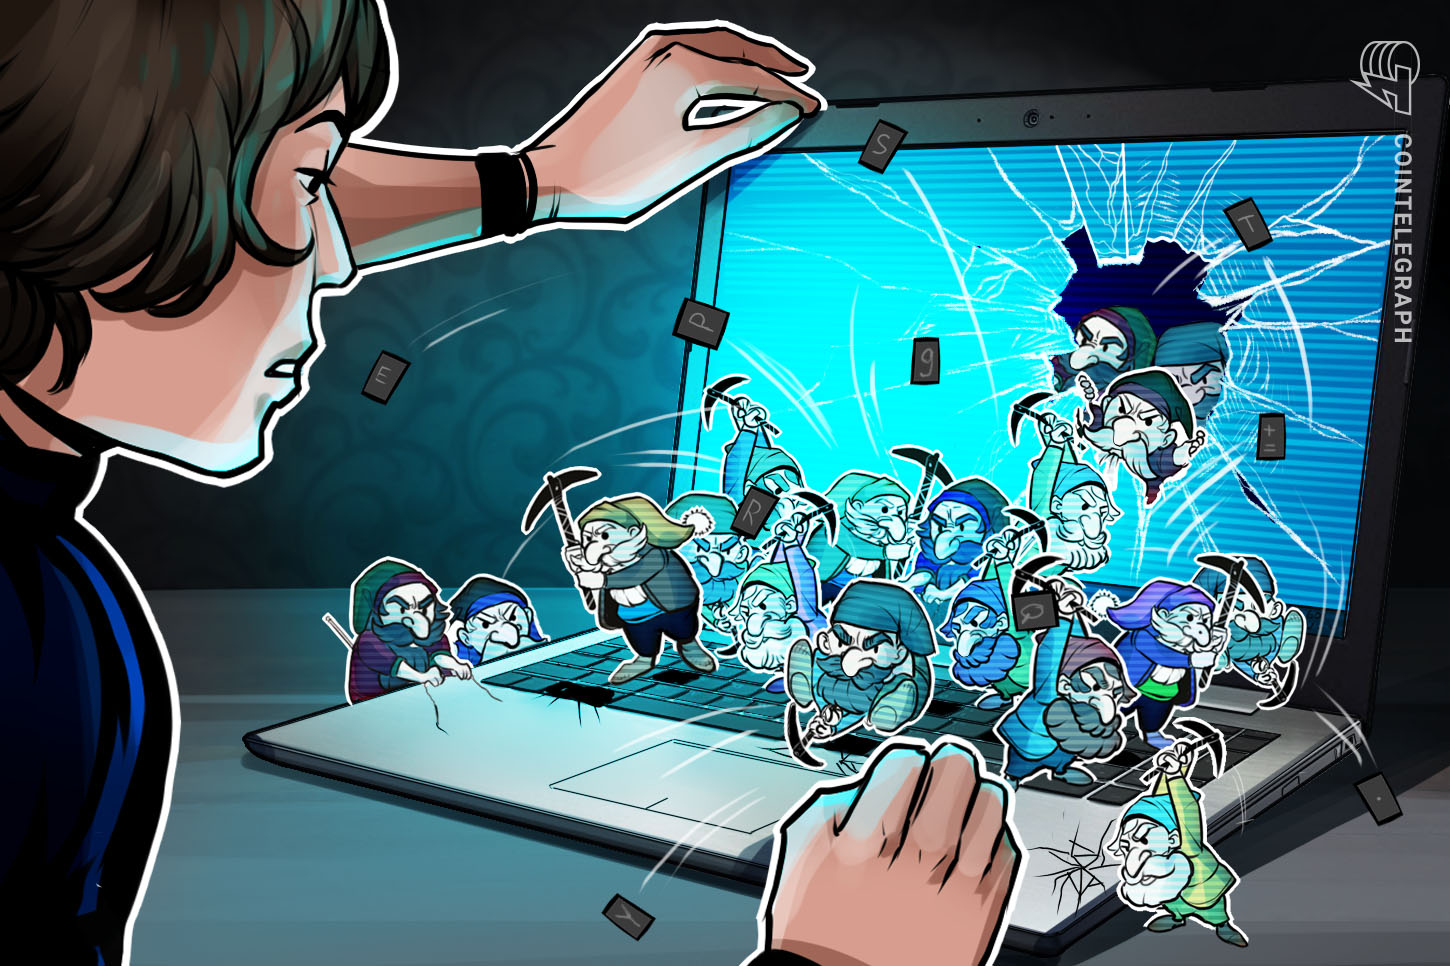 malwares mining cryptocurrency